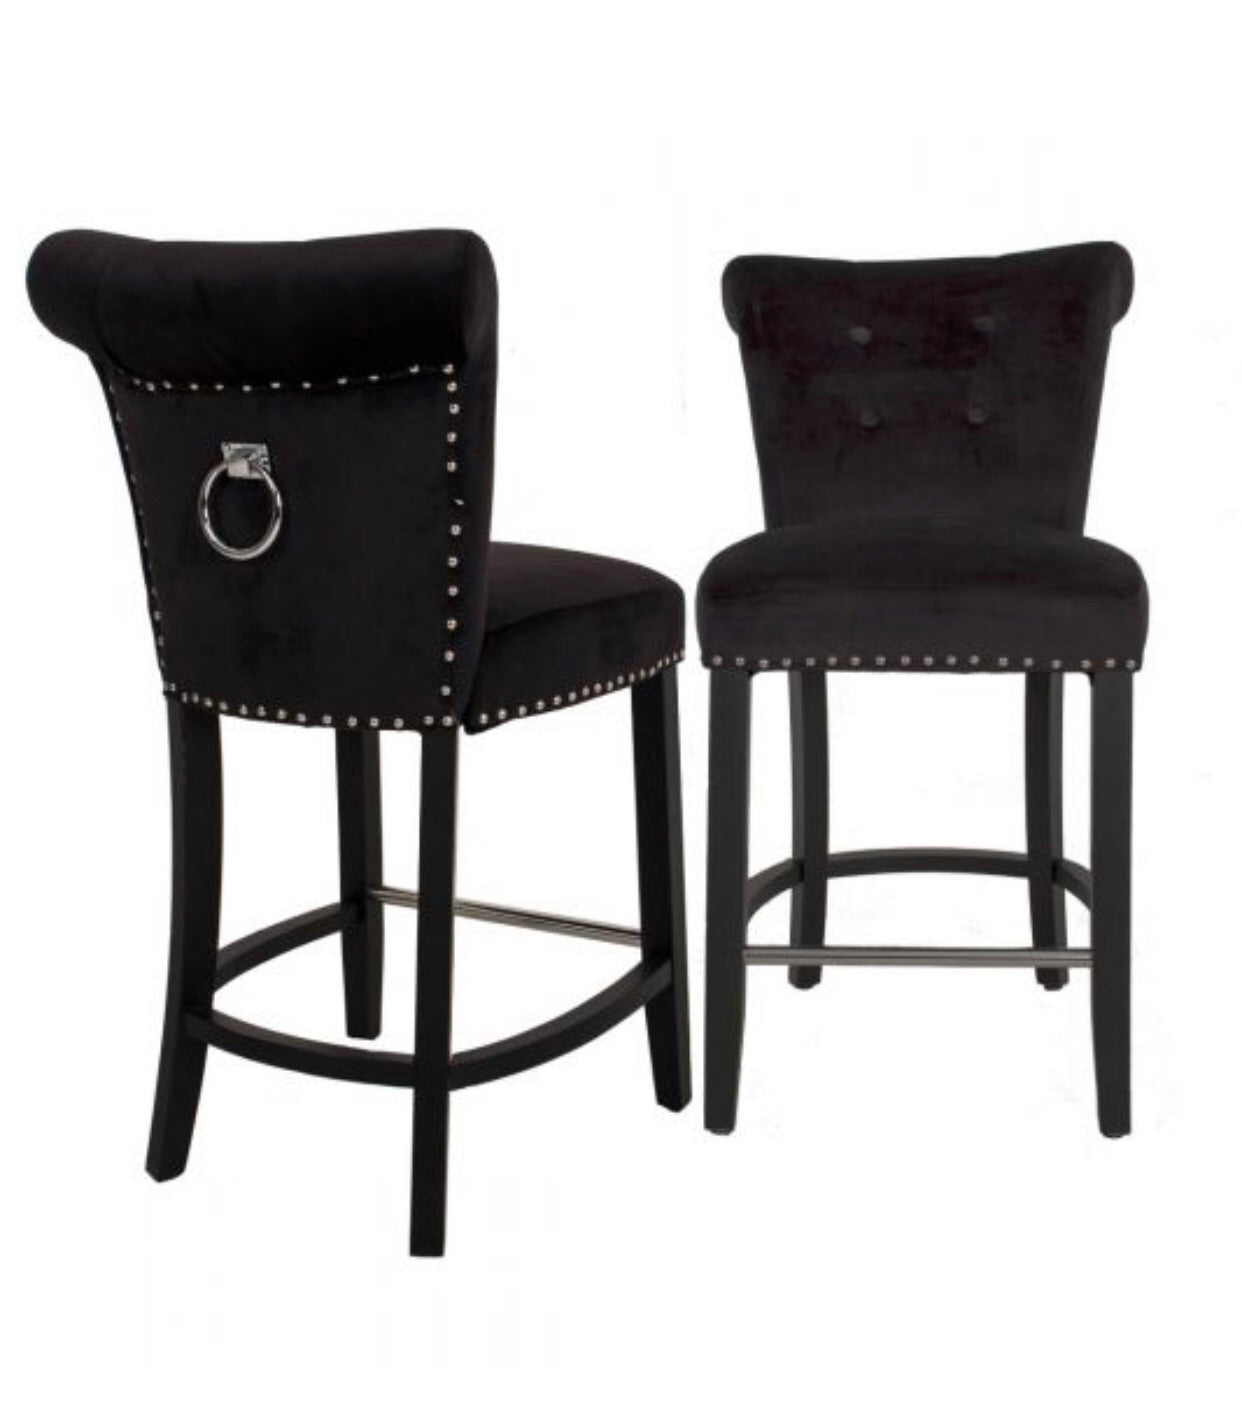 Knocker Bar Stool - Black